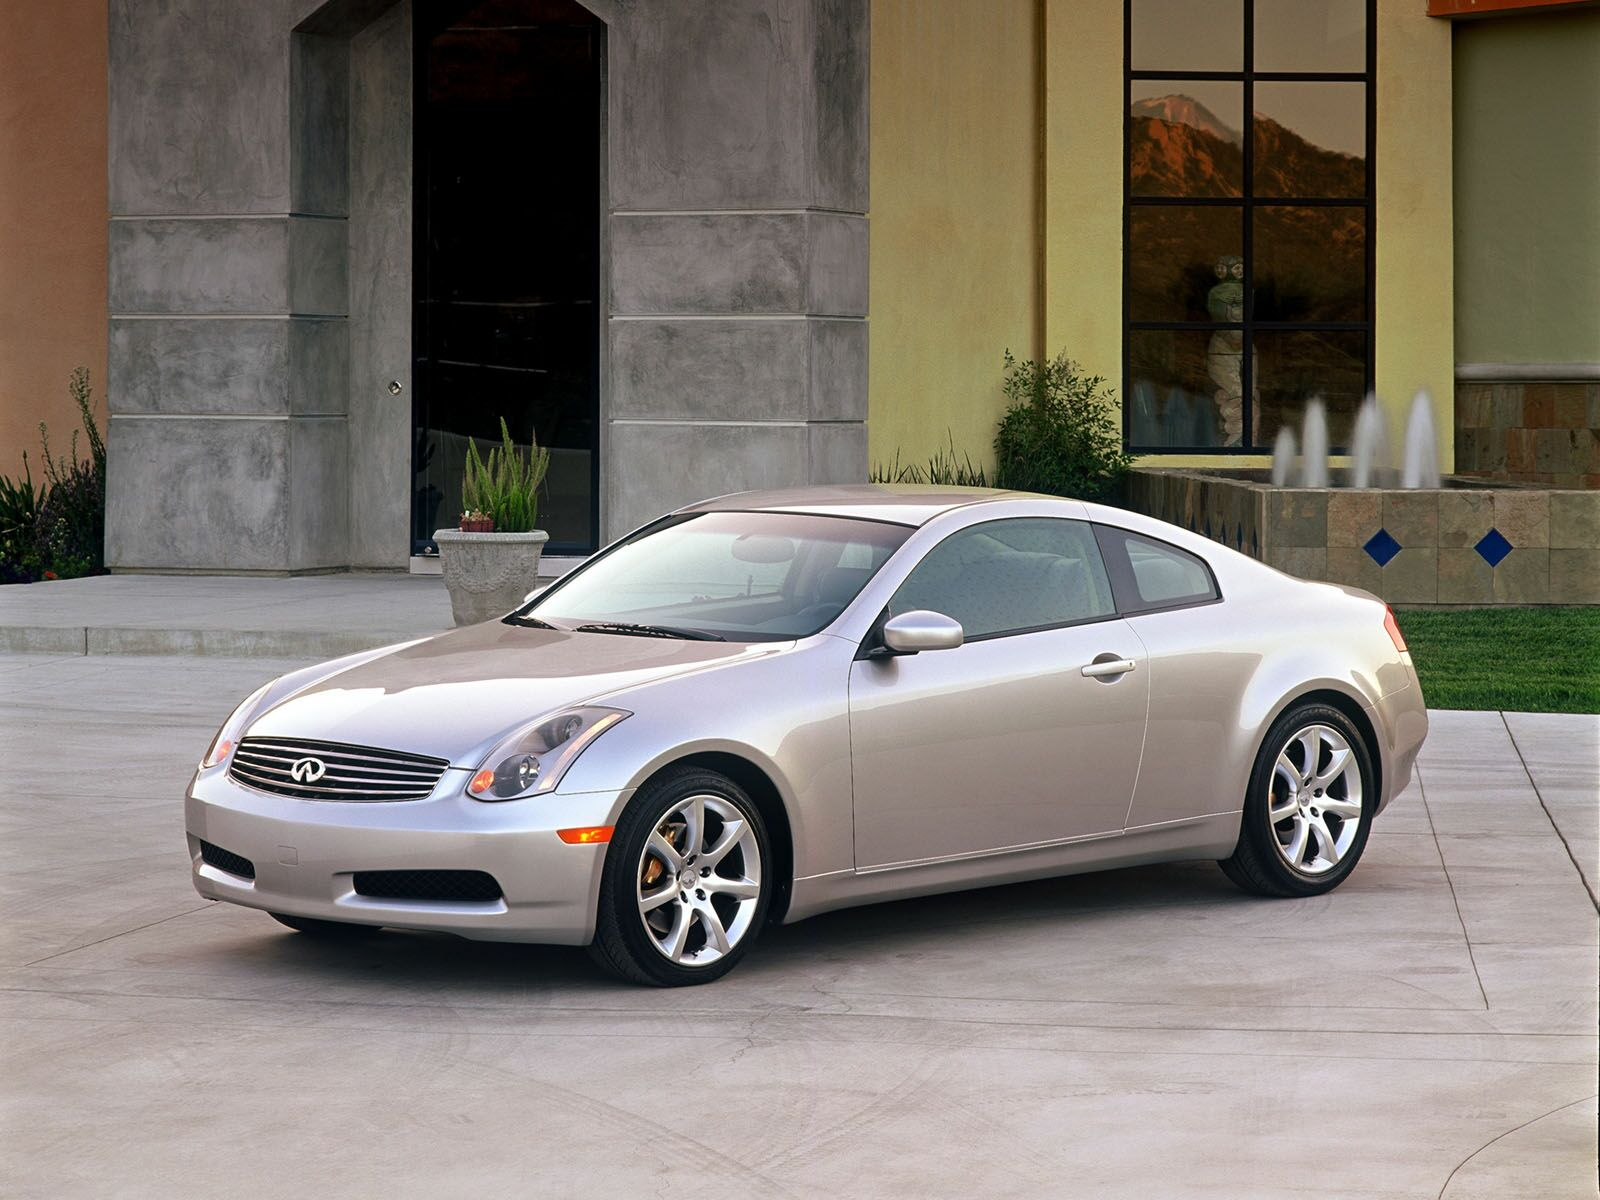 g35 coupe: